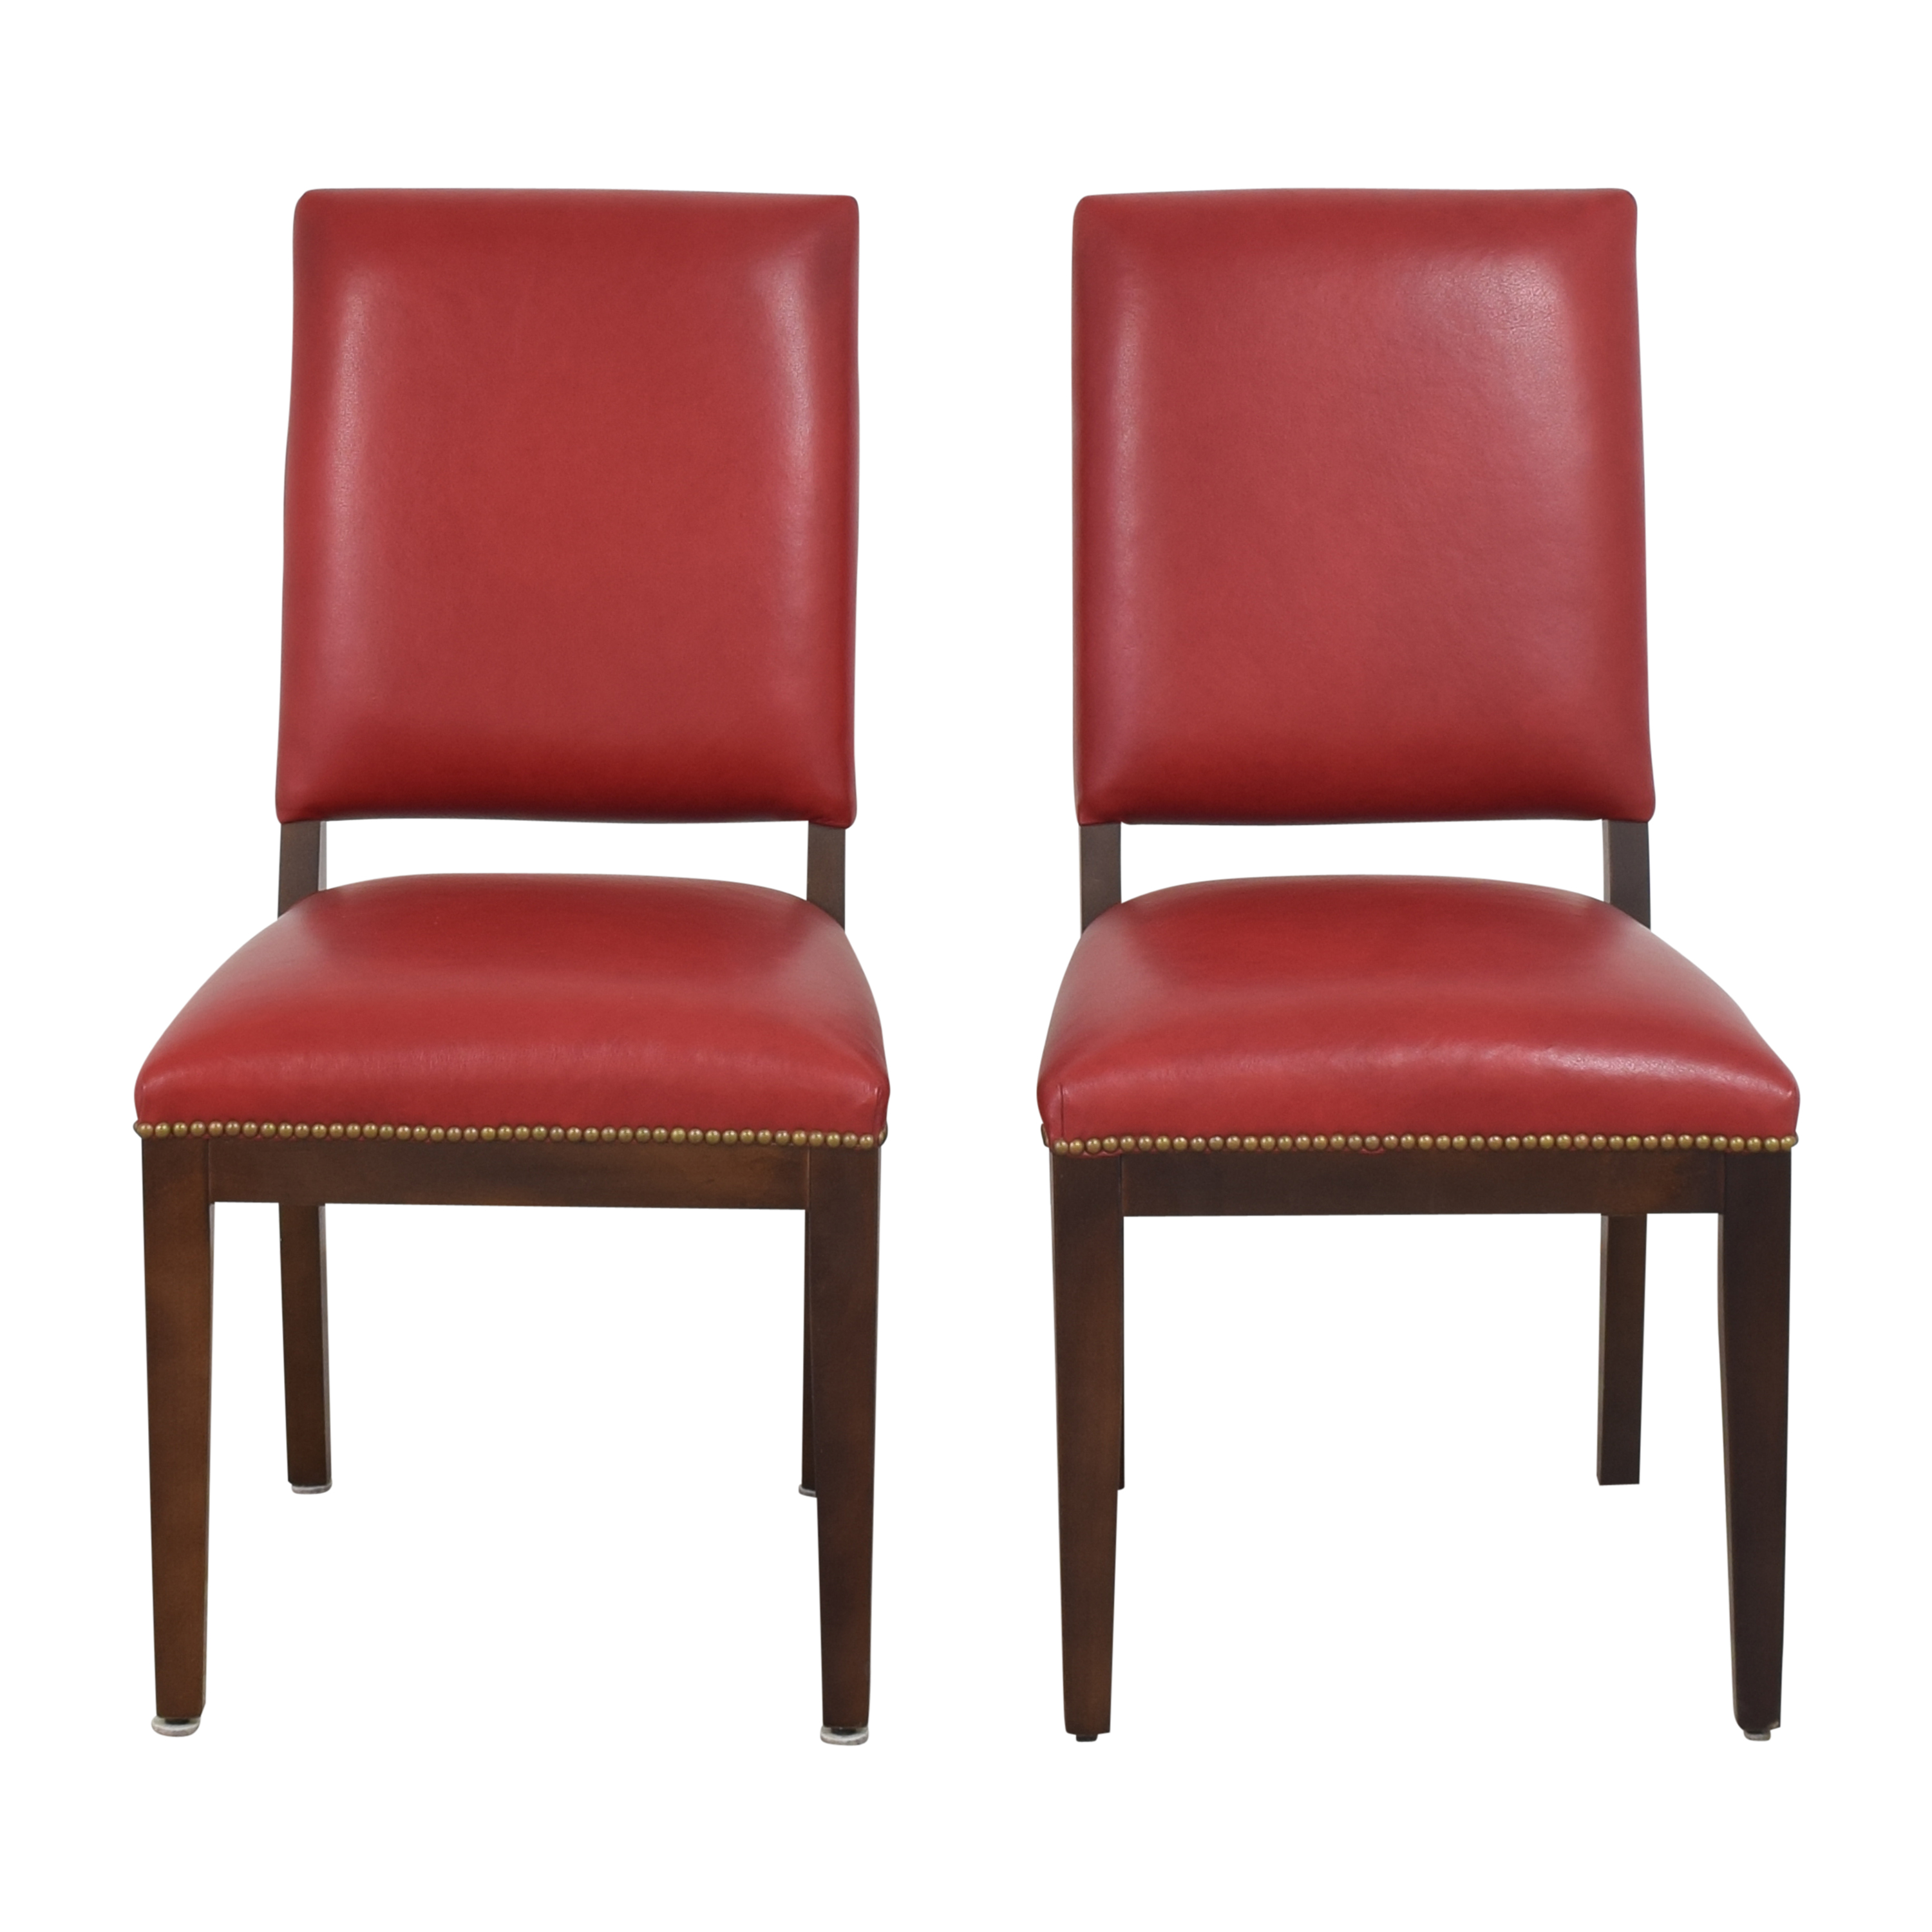 Nailhead Dining Chairs for sale